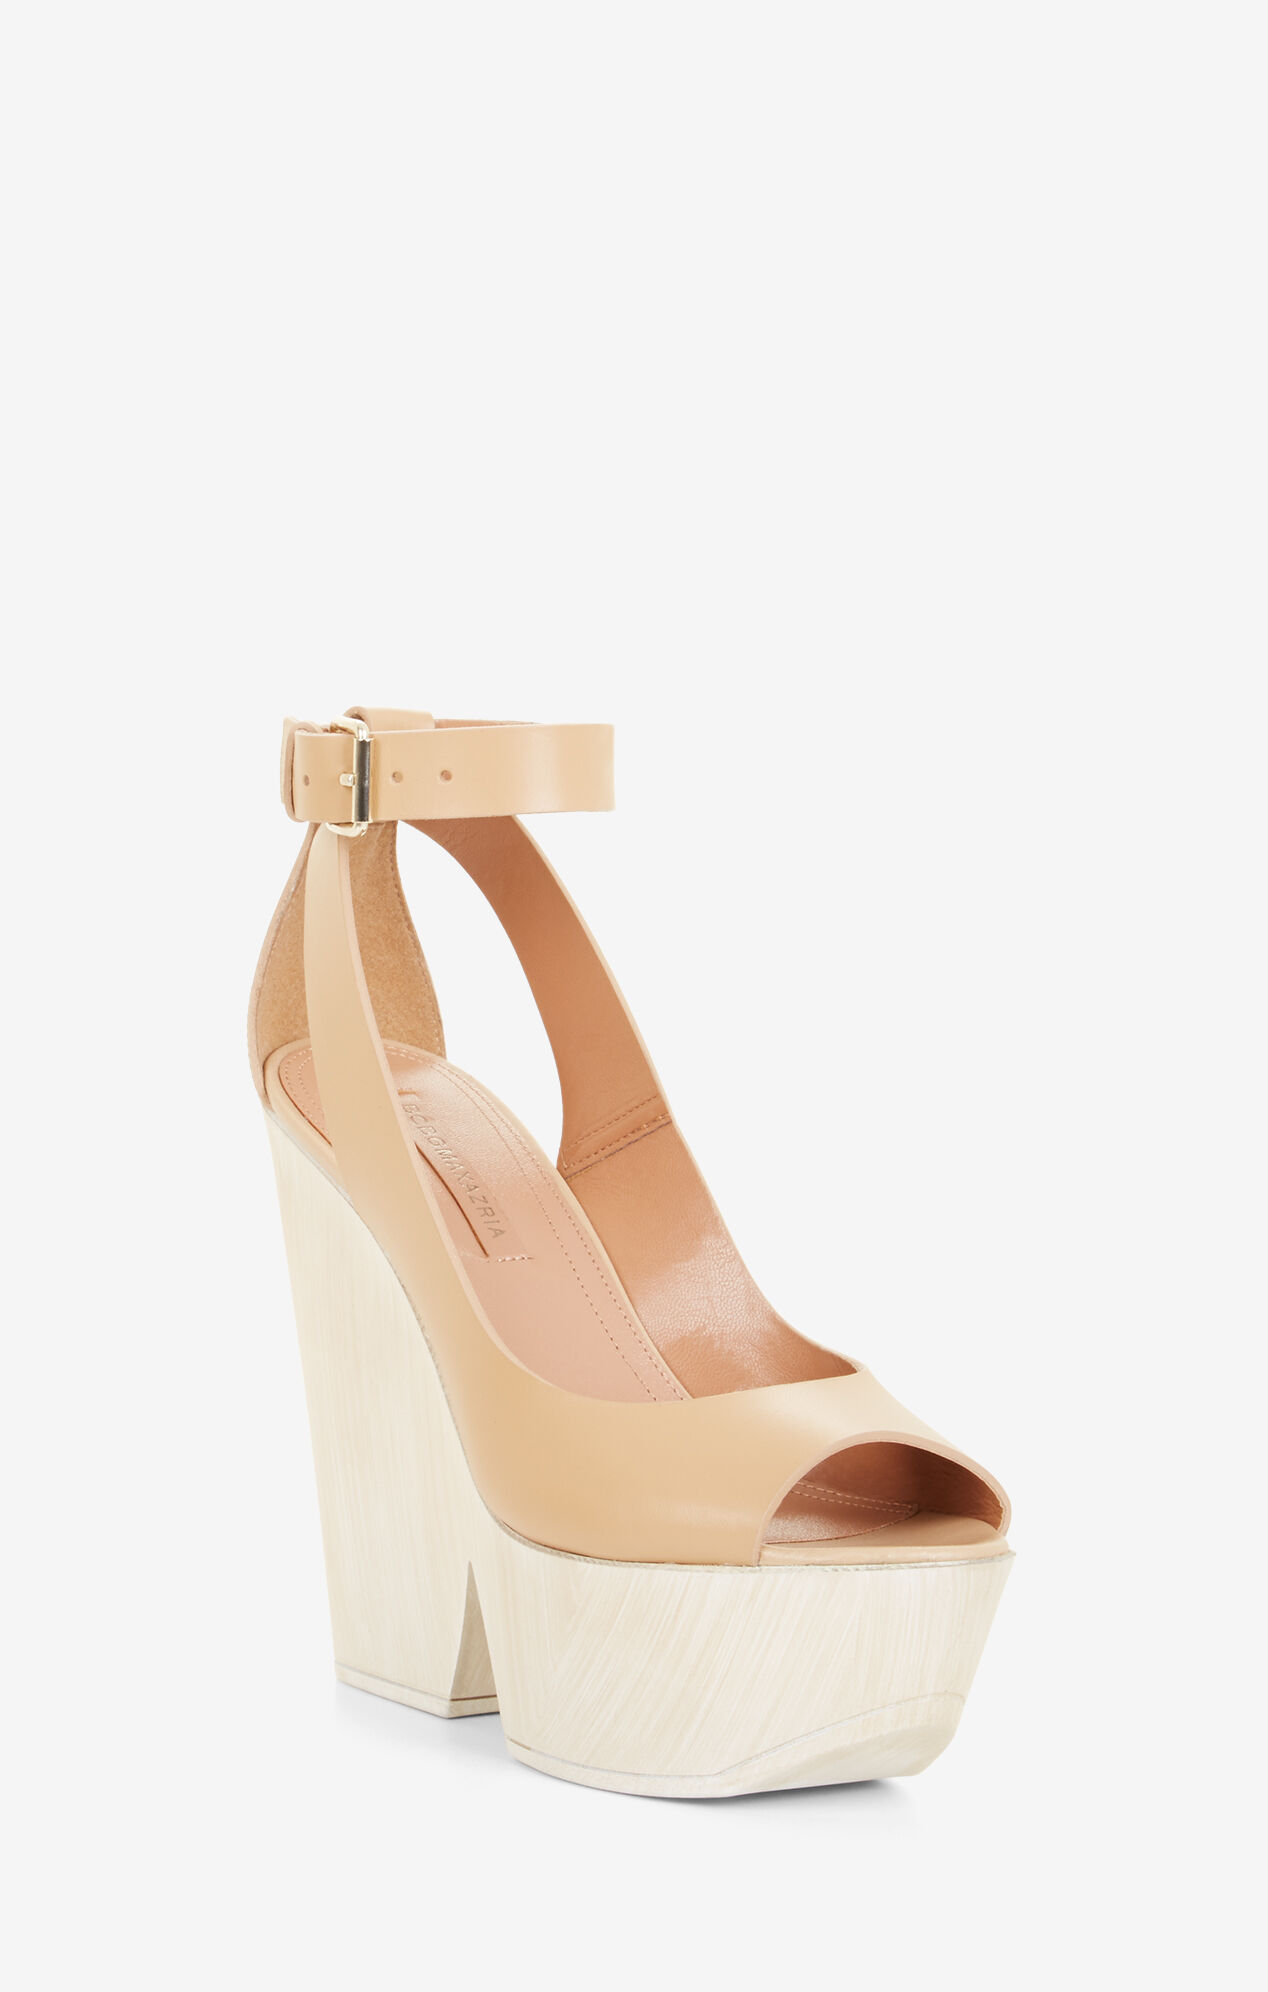 Kyara Leather Wedge Sandals